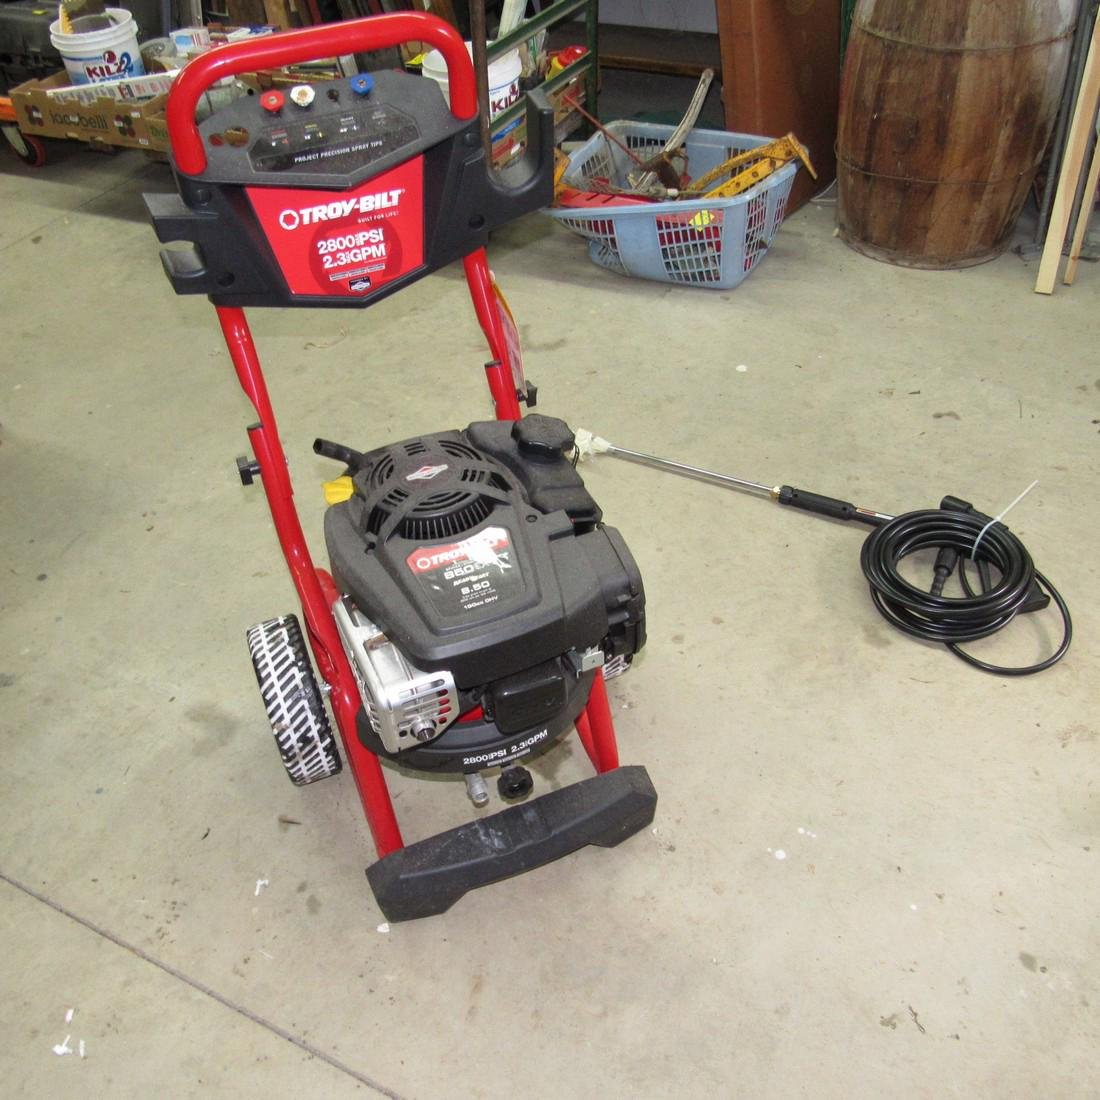 Troy Bilt 2800 PSI Pressure Washer